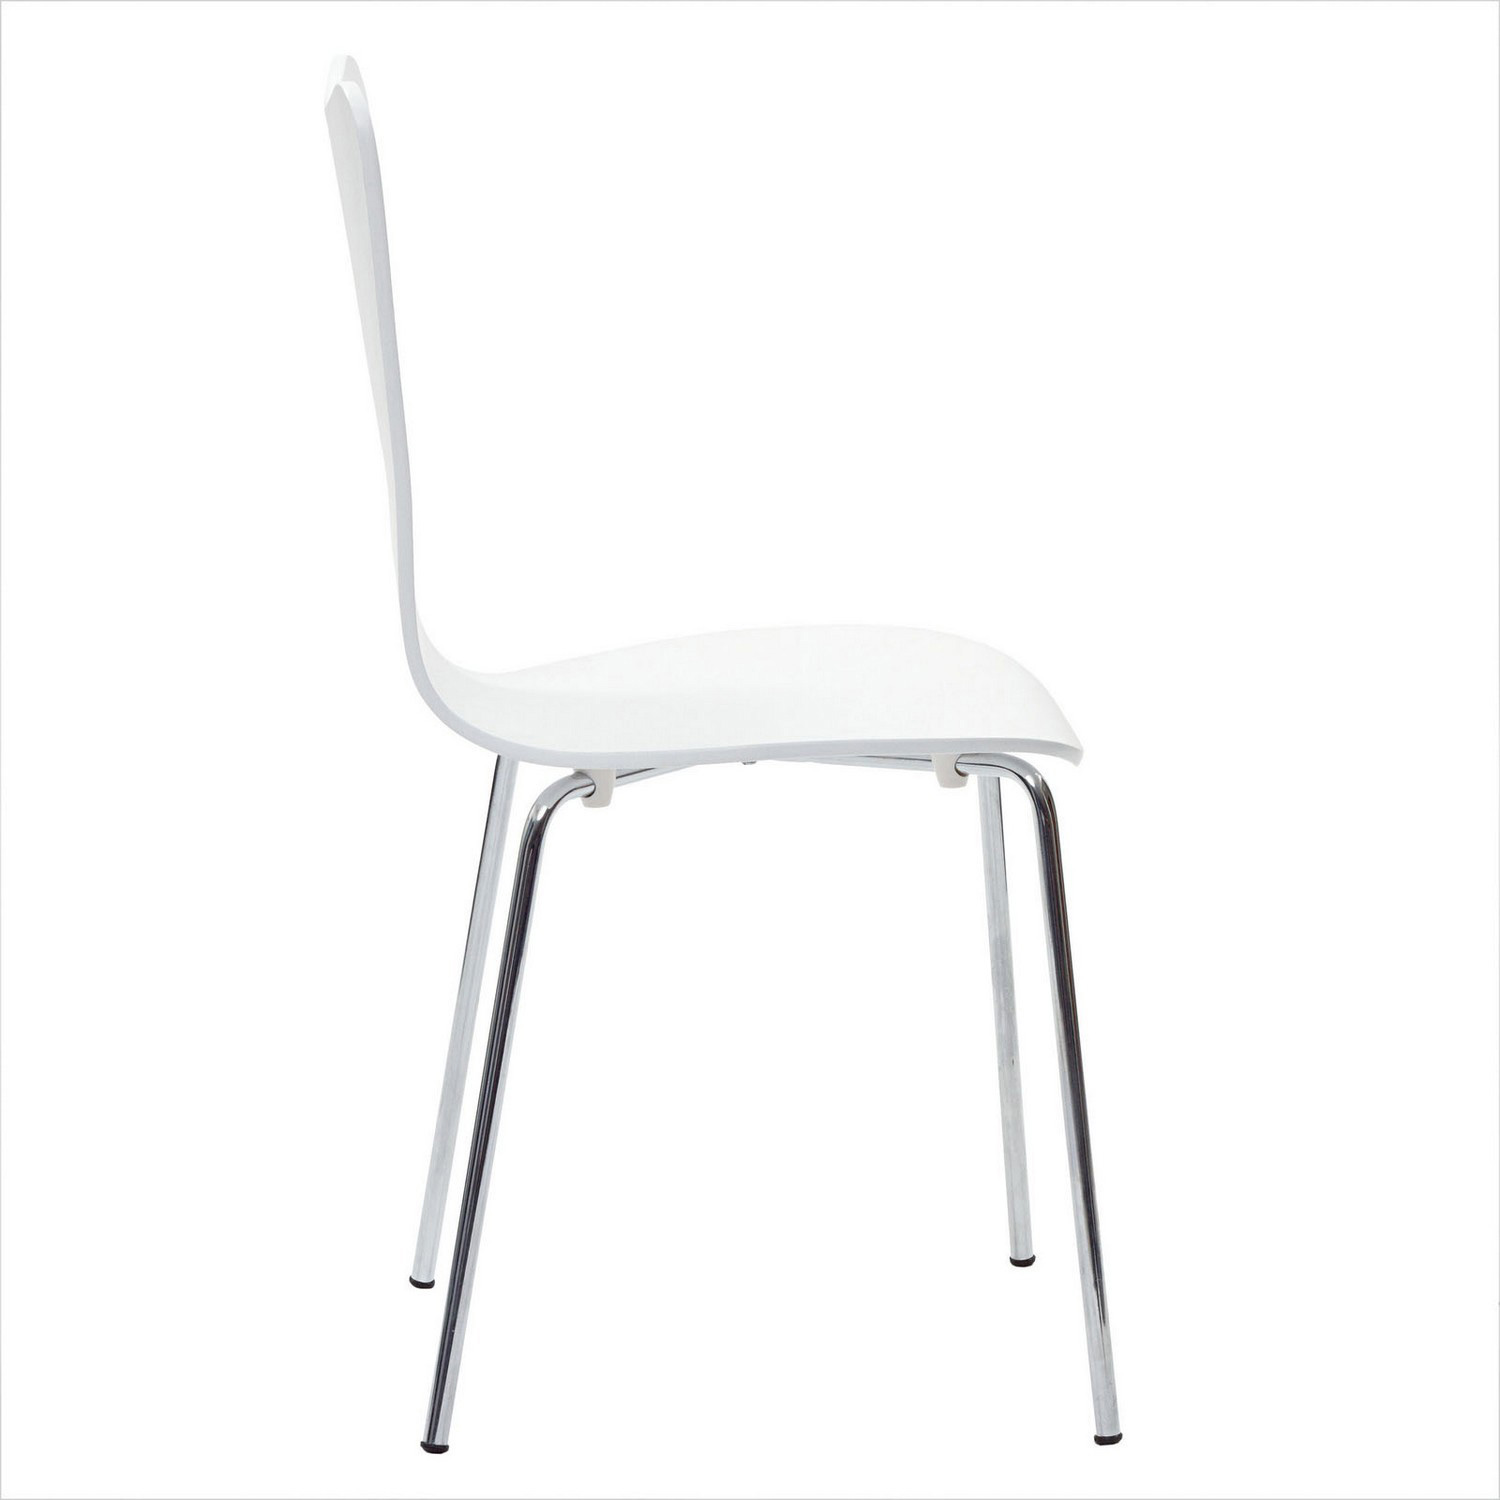 Modway Ernie Dining Side Chair - White